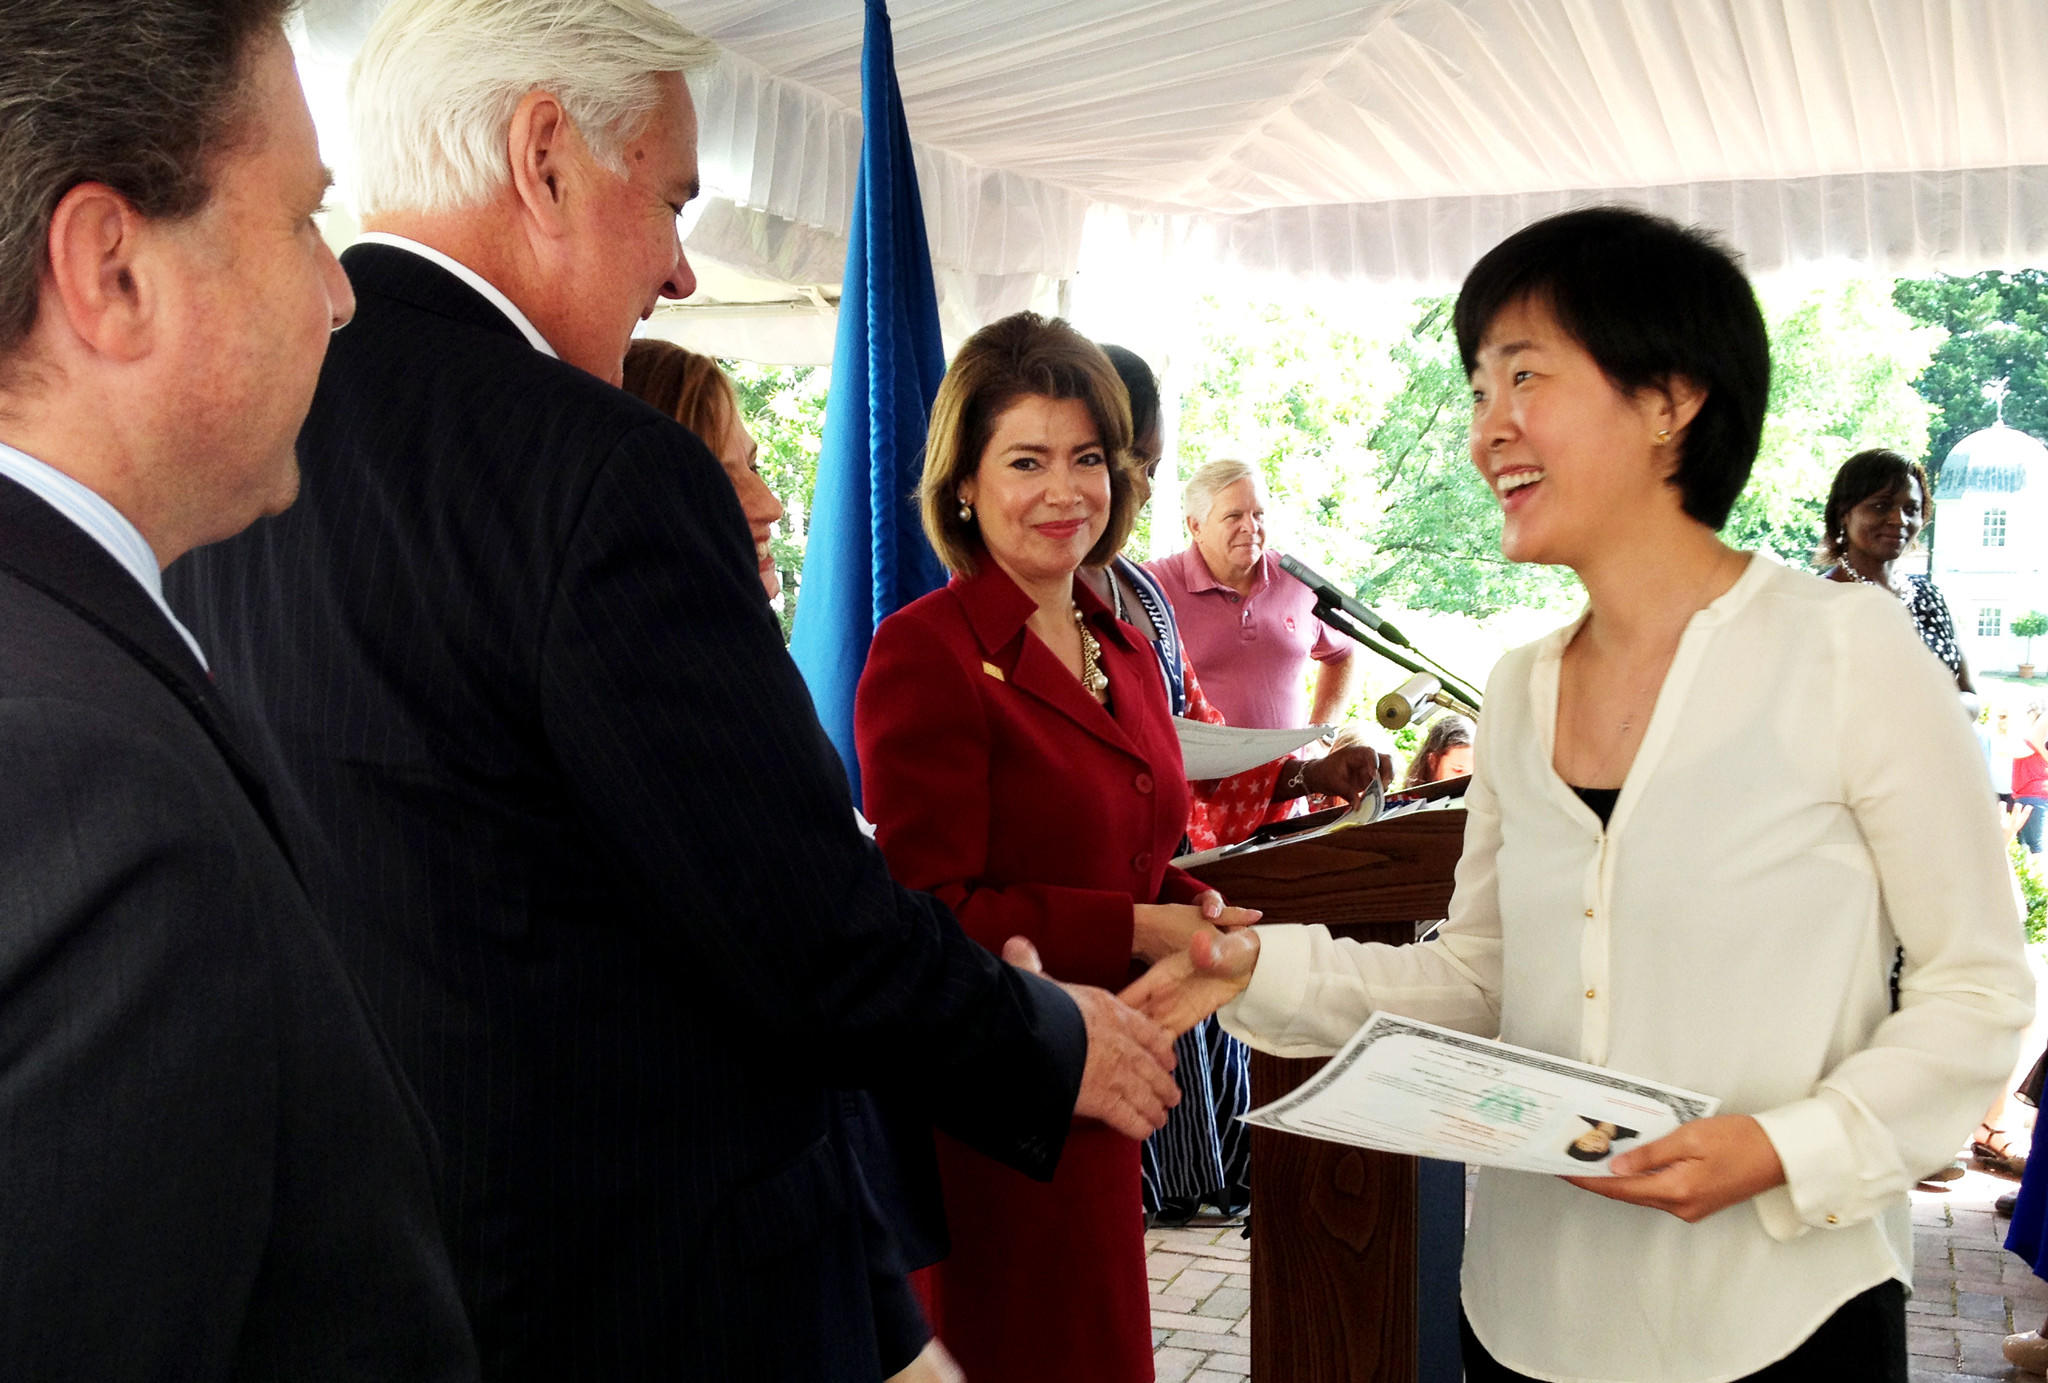 Robert C. Clark, president and CEO of Historic Annapolis, congratulates Man Yip on becoming a U.S. citizen as U.S. Small Business Administration chief Maria Contreras-Sweet looks on. Yip was one of 37 immigrants from 29 nations who were naturalized Friday during a ceremony at the William Paca House & Garden in Annapolis.